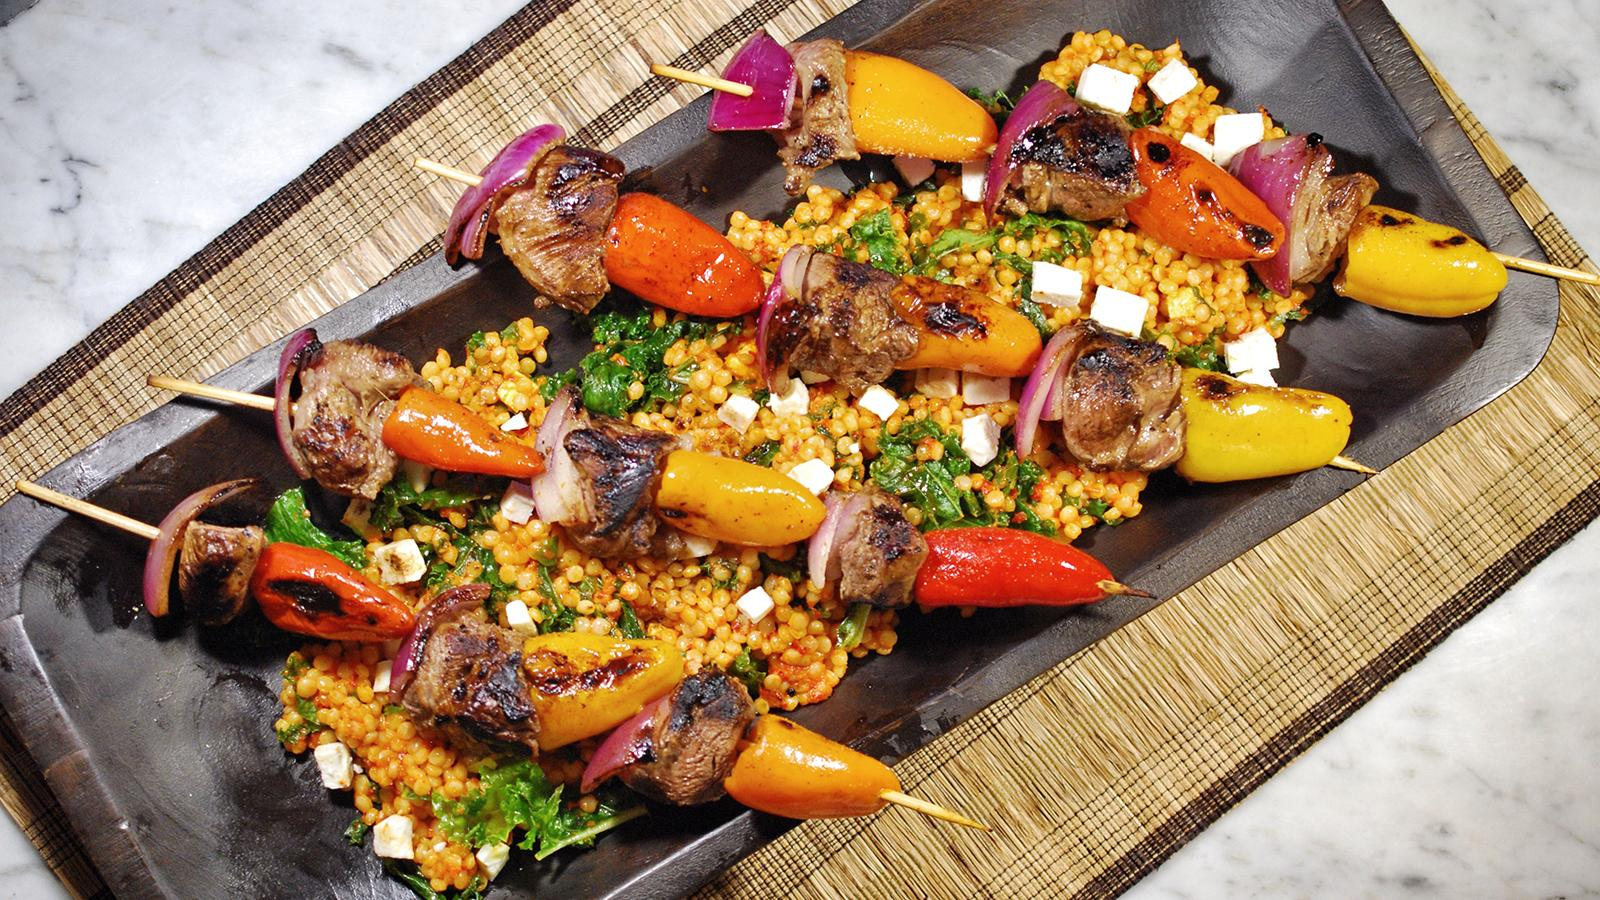 8 20 Recipe Lamb Kebabs With Israeli Couscous Salad Wine Images, Photos, Reviews